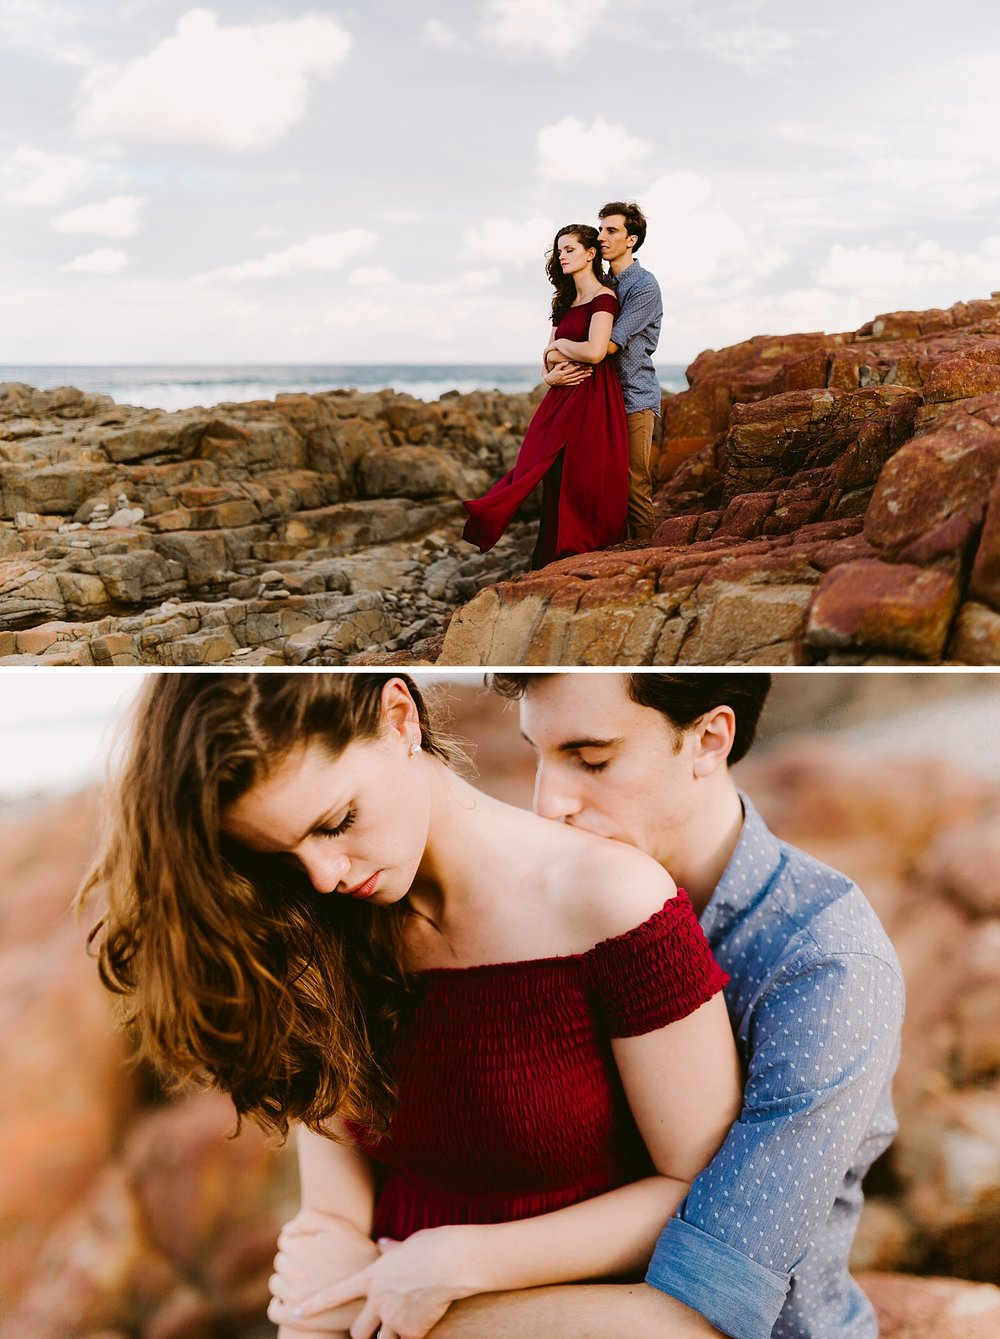 victoria heer | victoria heer photography | queensland australia engagement session | coolum beach engagement | australia wedding photographer | brisbane wedding photographer